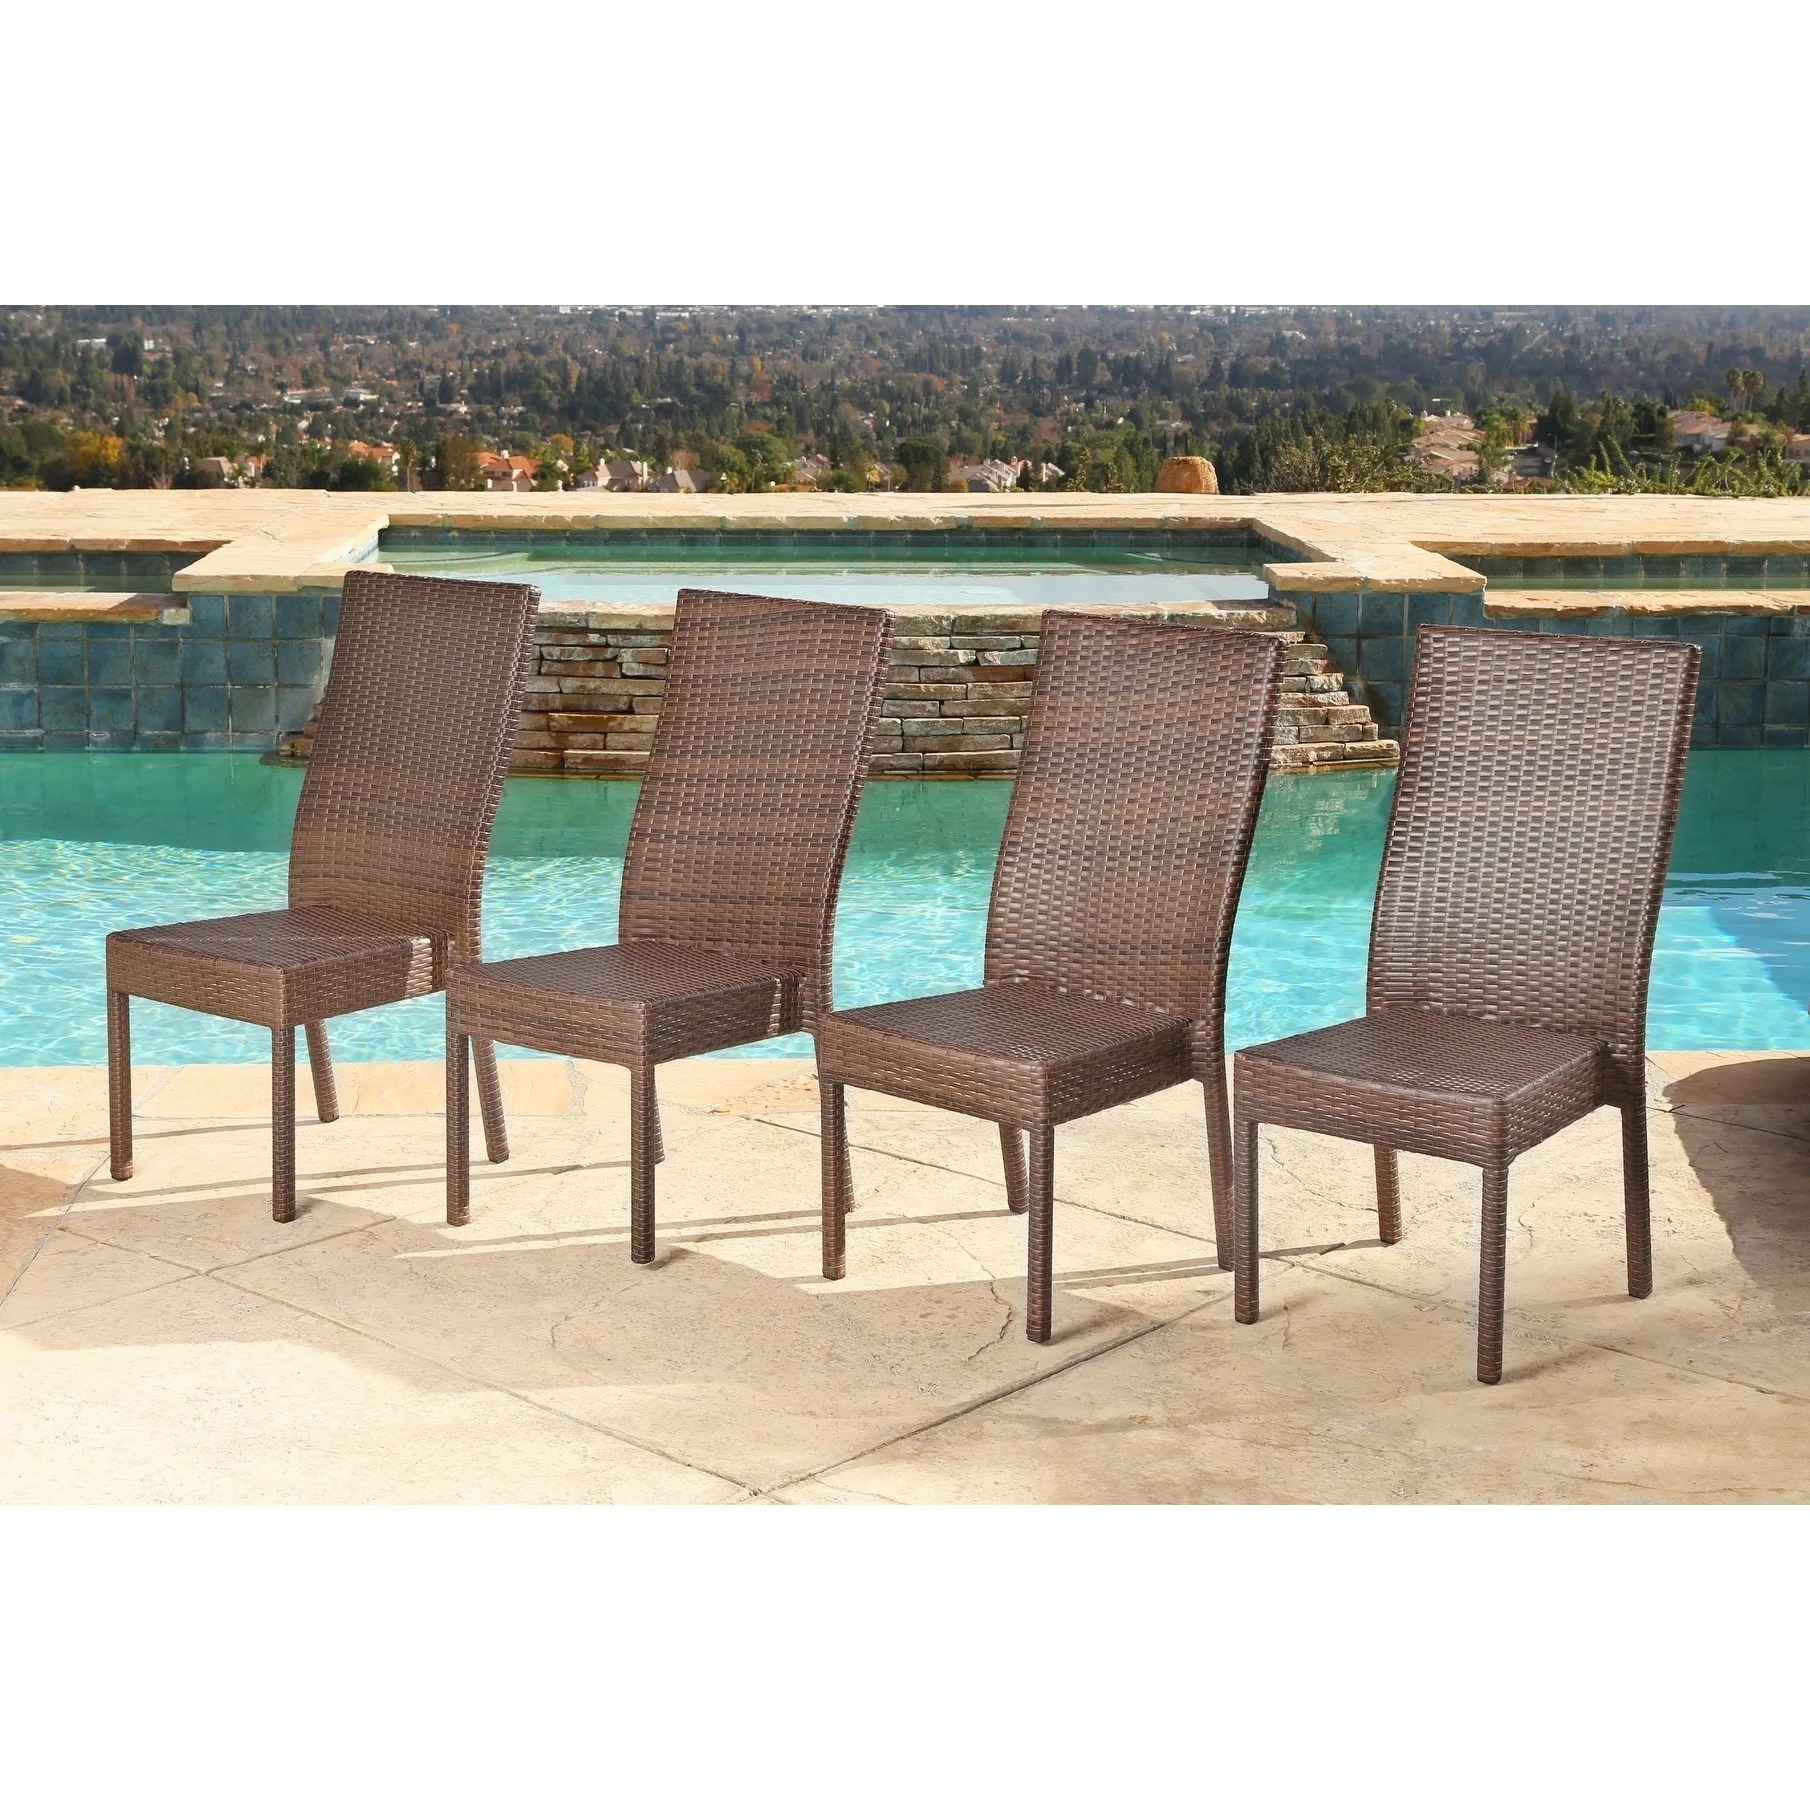 Outdoor Wicker Dining Chairs Details About Abbyson Palermo Outdoor Wicker Dining Chairs Set Of 4